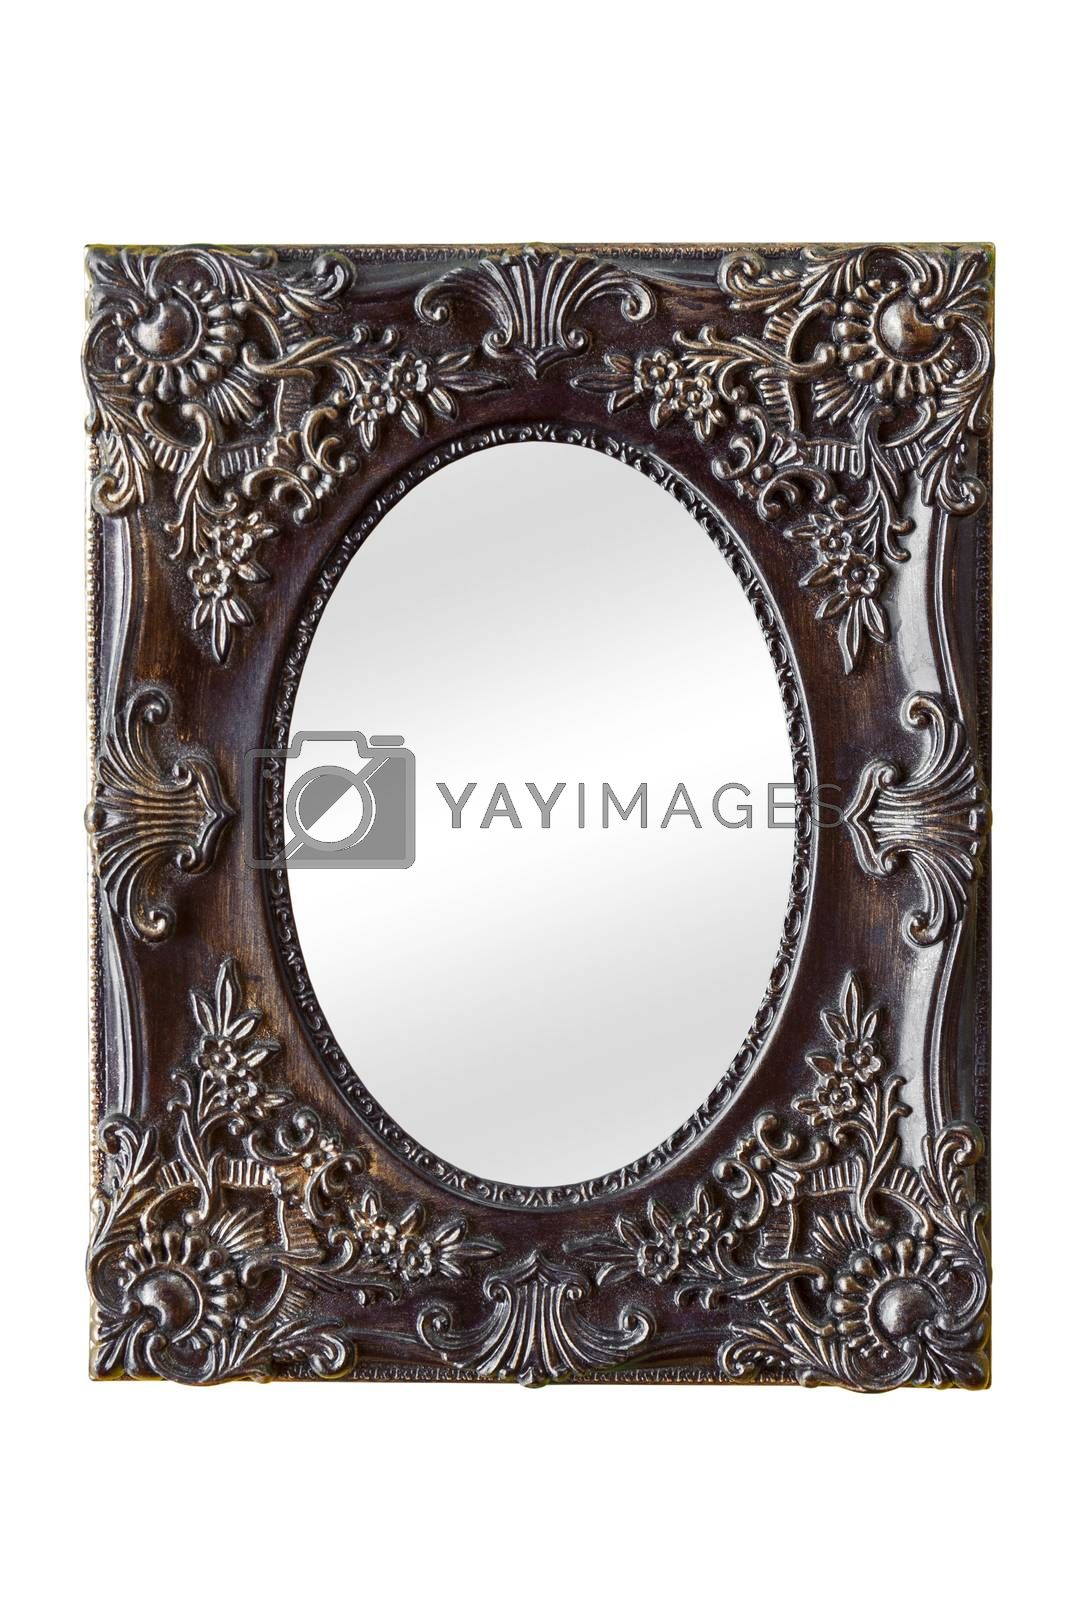 Old classic style mirror with vintage decorated frame isolated on white background